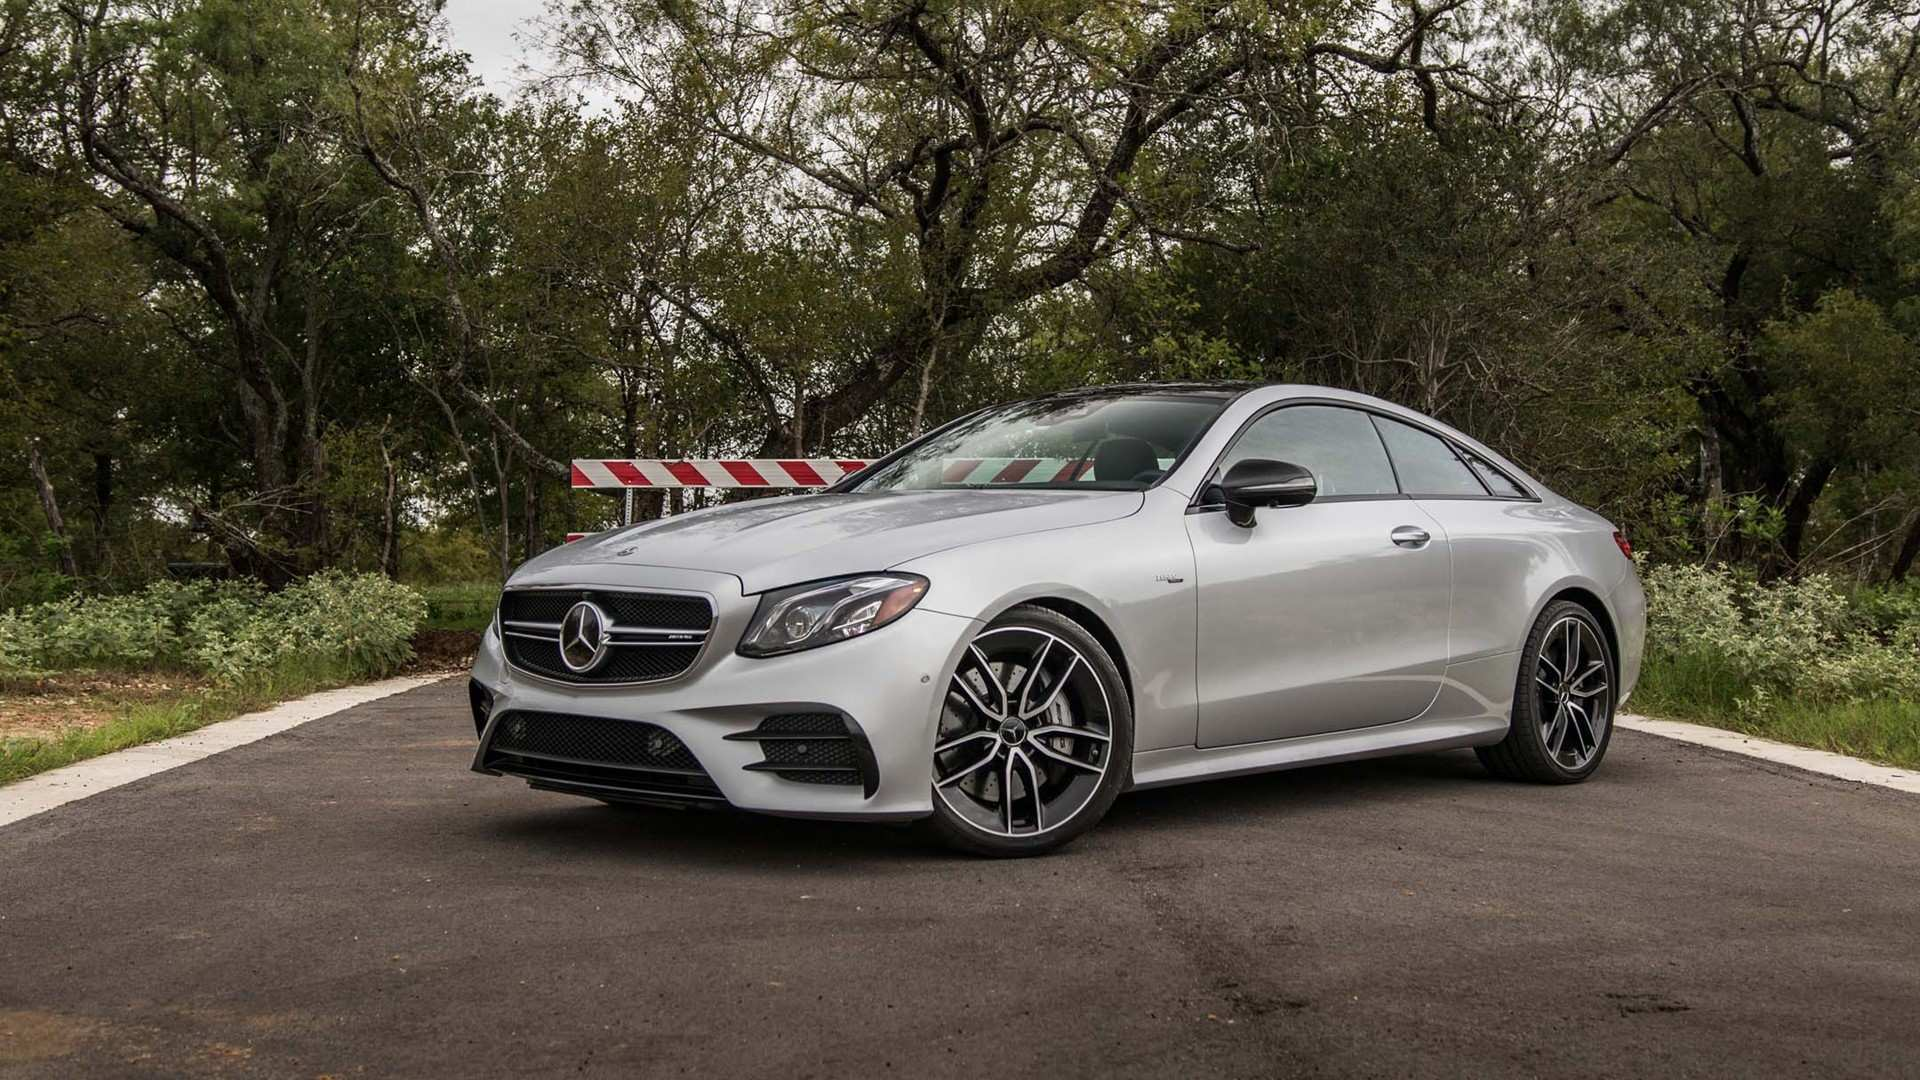 75 Great The Mercedes C 2019 Interior First Drive Price Performance And Review Release with The Mercedes C 2019 Interior First Drive Price Performance And Review